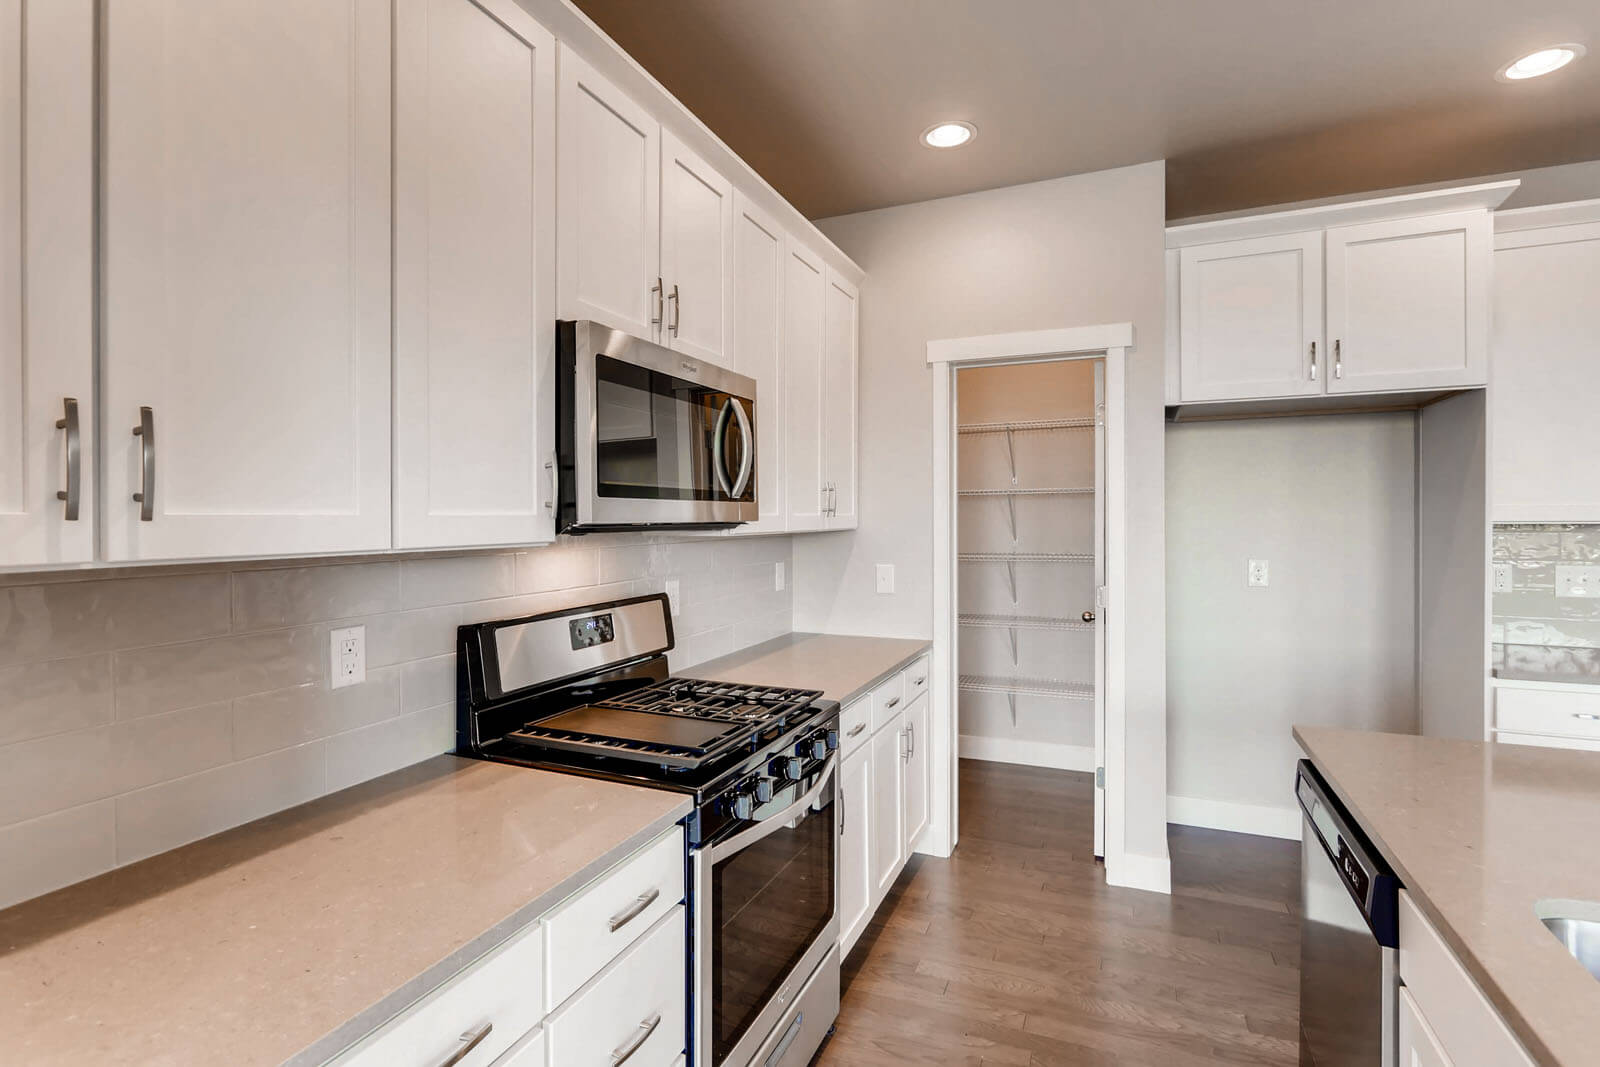 New Denver Single Family Home Quick Possession <b></b>Jett in Westminster Station, located at 6818 Canosa Street Built By Cardel Homes Denver